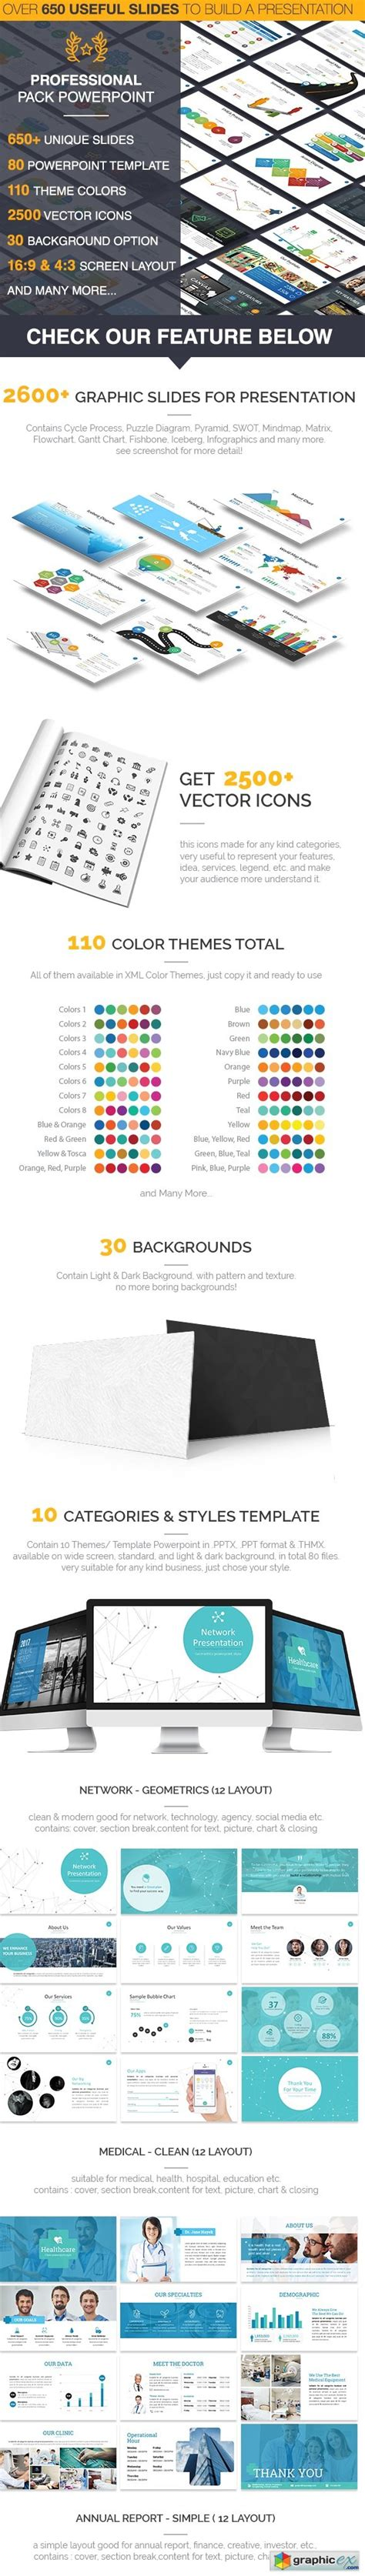 powerpoint template professional pack 187 free download